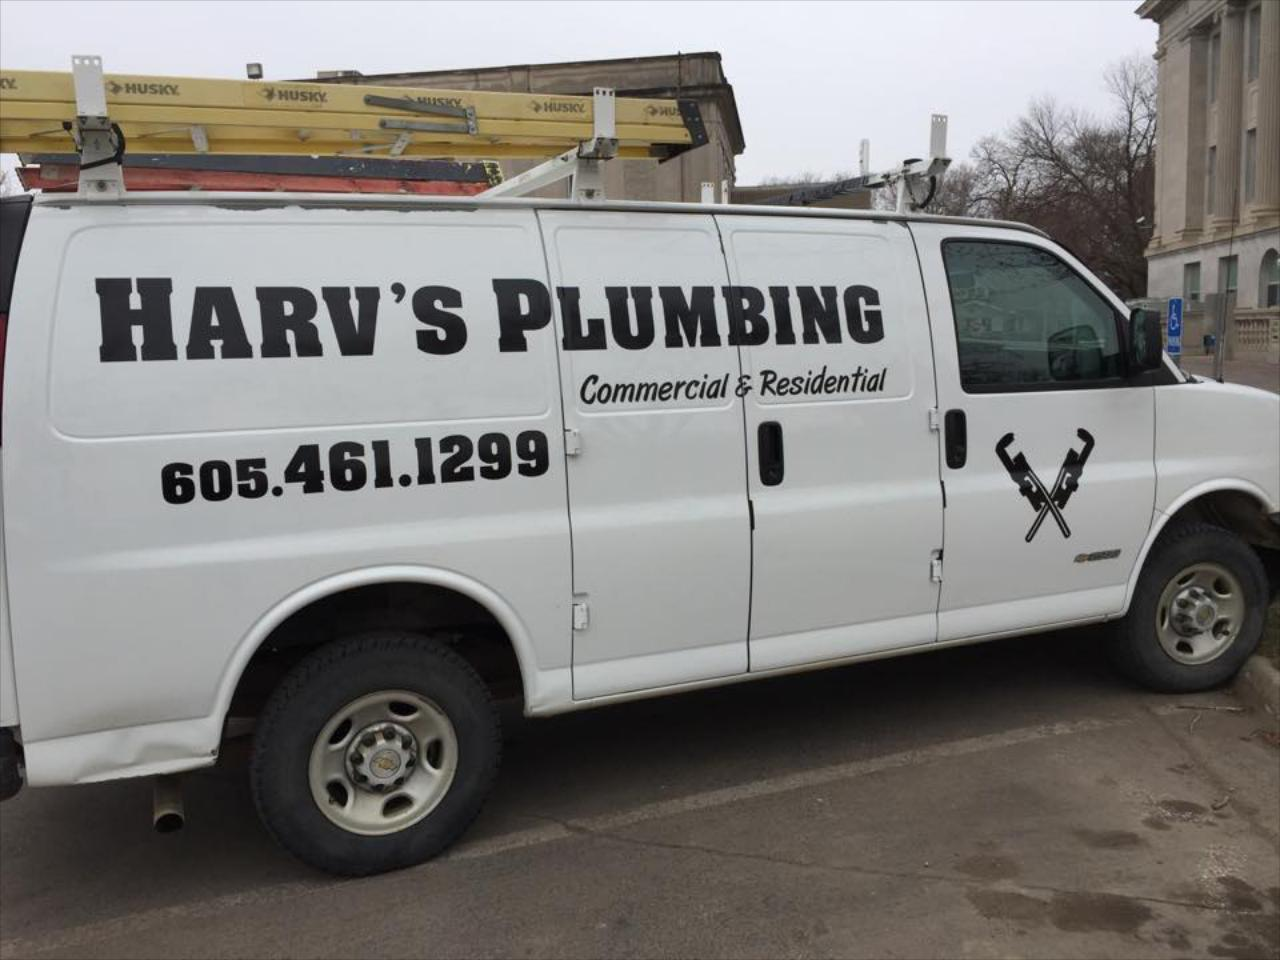 Avoid issues with professional plumbing services from our knowledgeable, experienced plumbers.